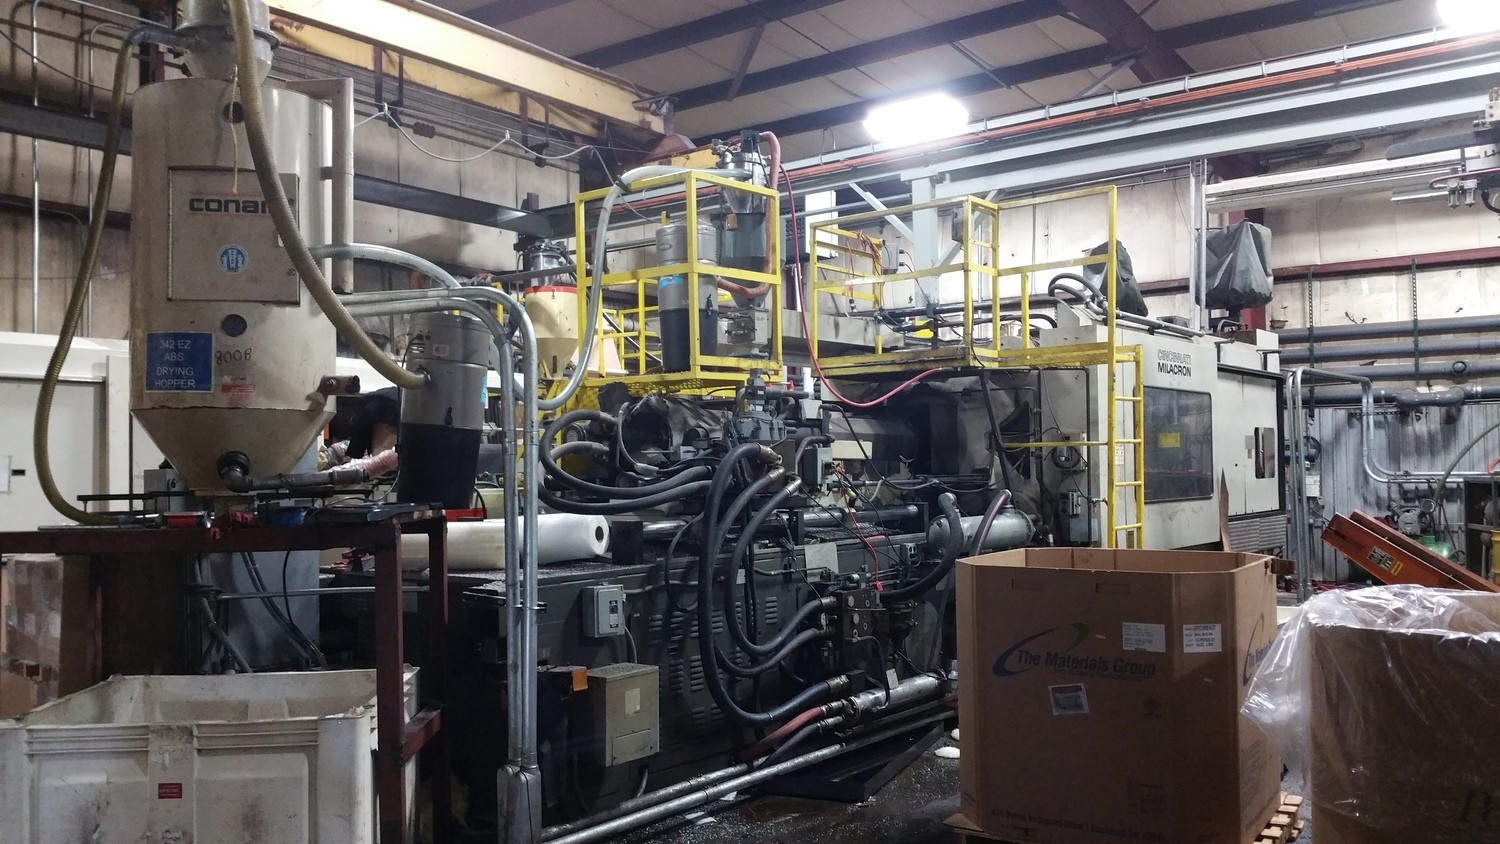 850 Ton Capacity Cincinnati Injection Molding Machine For Sale